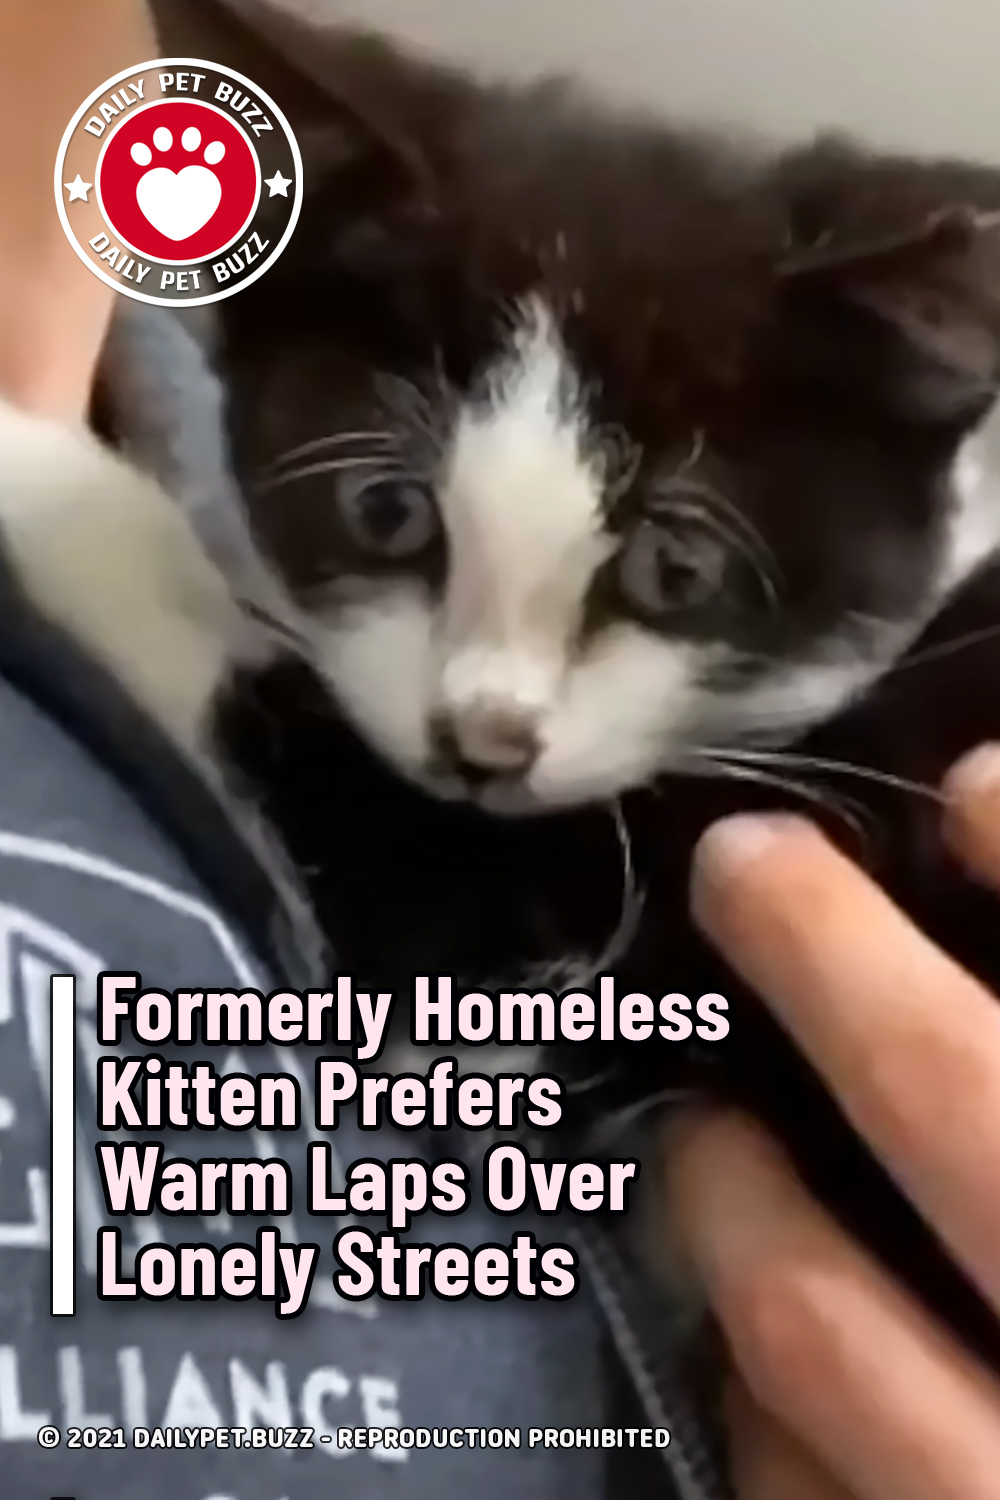 Formerly Homeless Kitten Prefers Warm Laps Over Lonely Streets